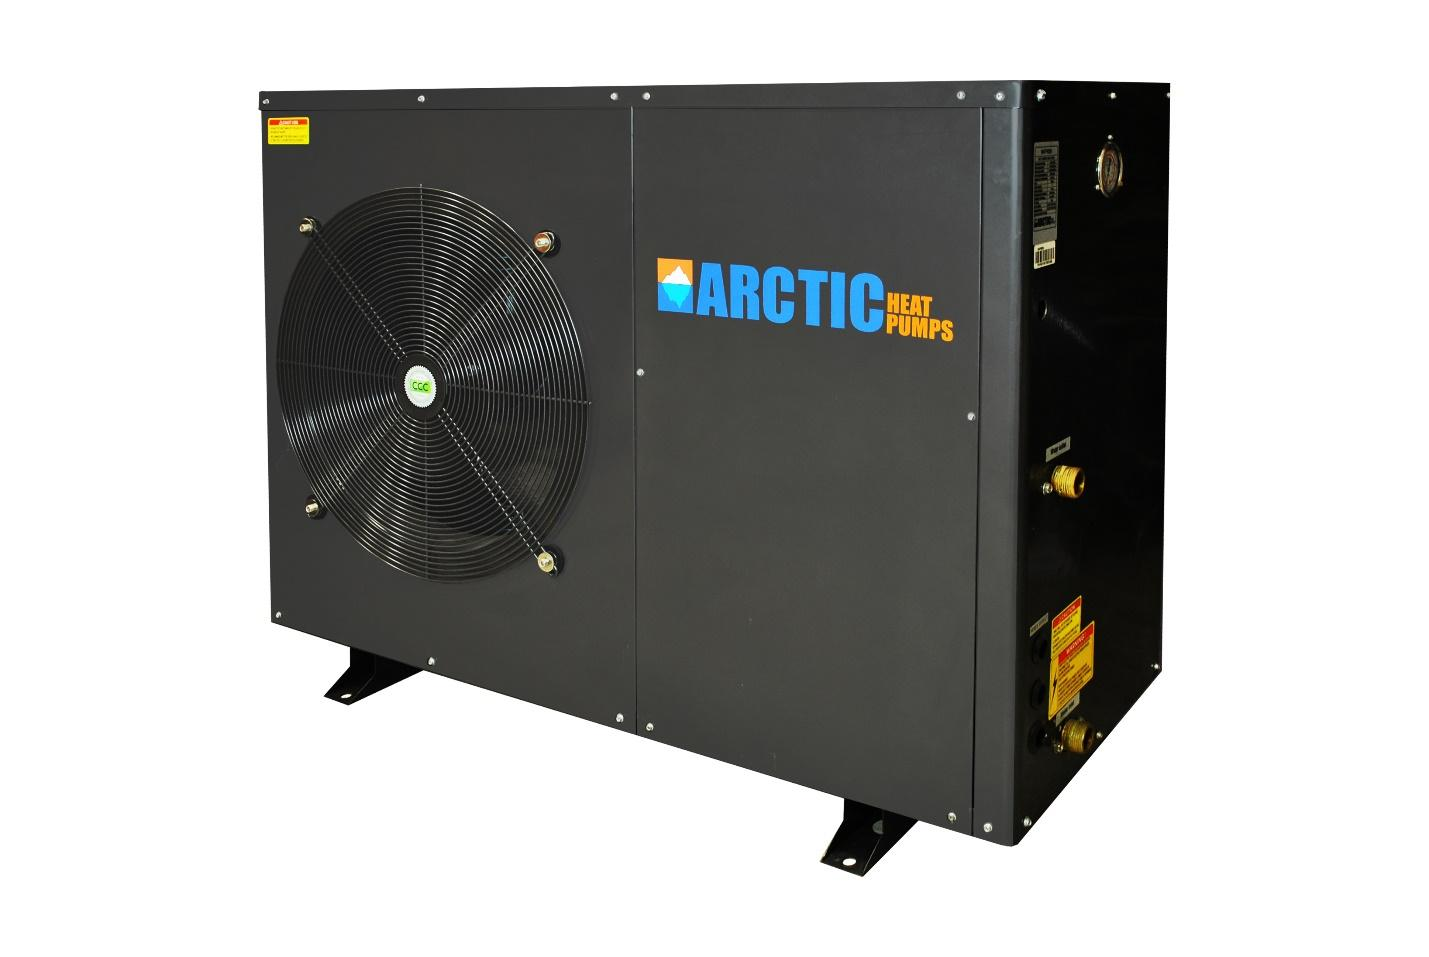 https://nlsolarheating.solartubs.com/images/Arctic%20020.jpg